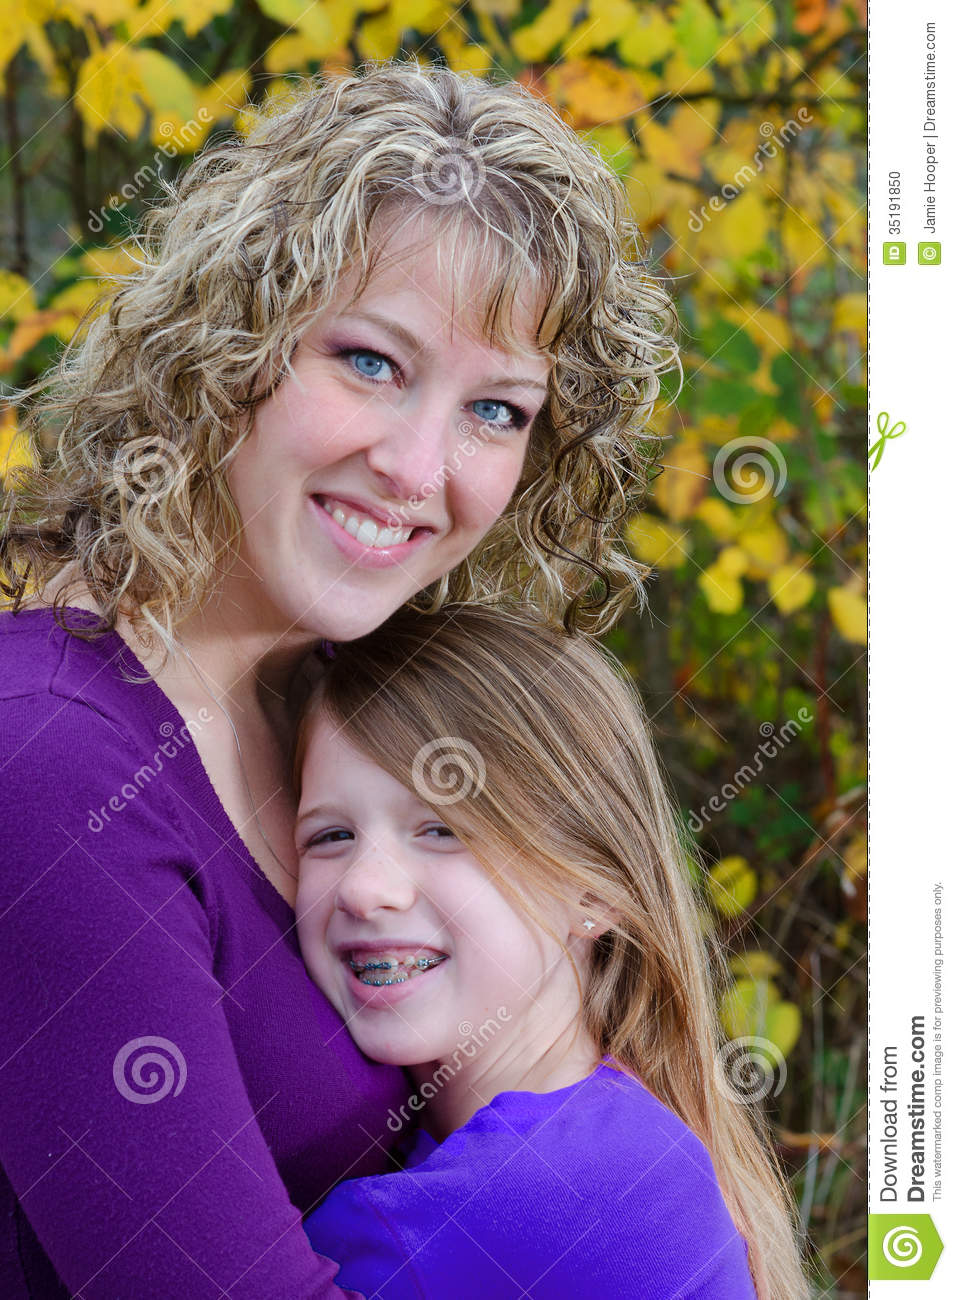 mom-daughter-close-up-portrait-beautiful-young-mother-her-pre-teen ...